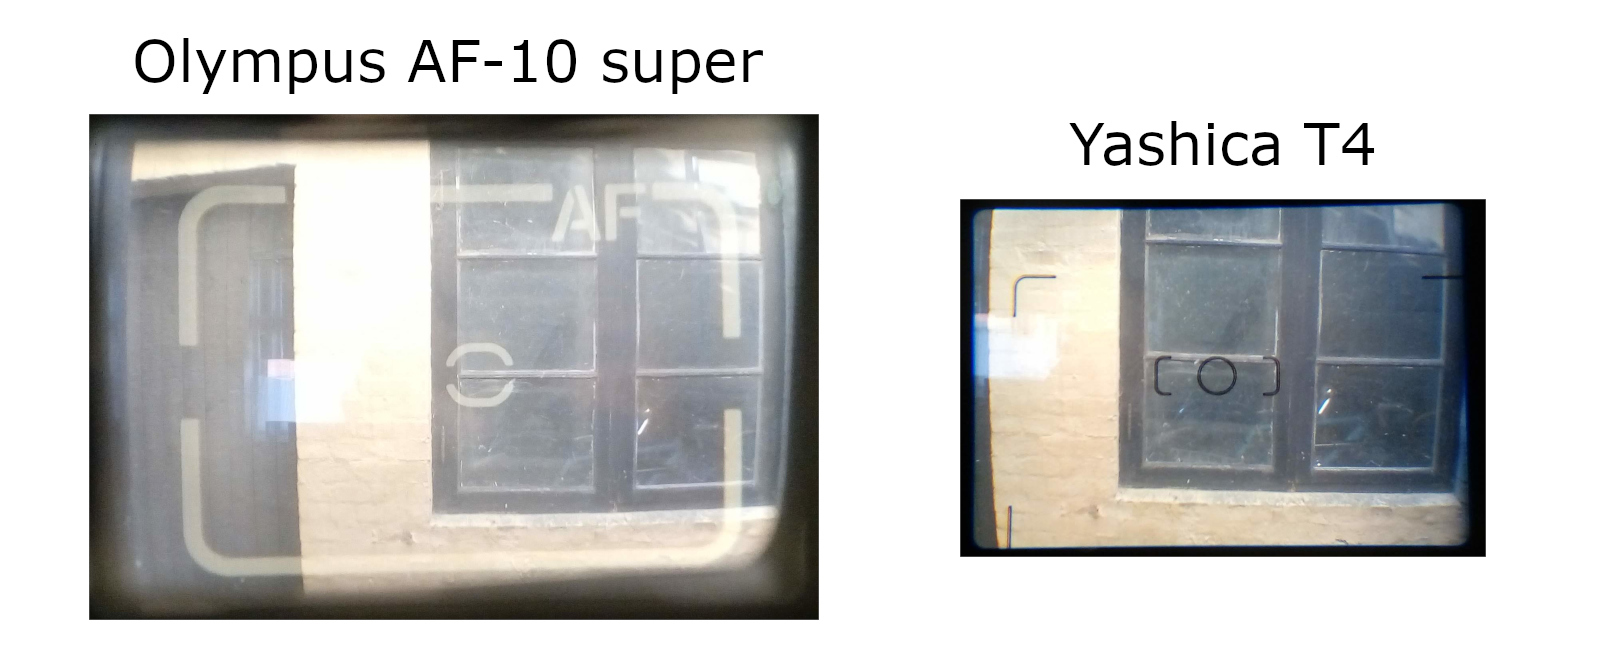 Yashica T4 viewfinder comparison